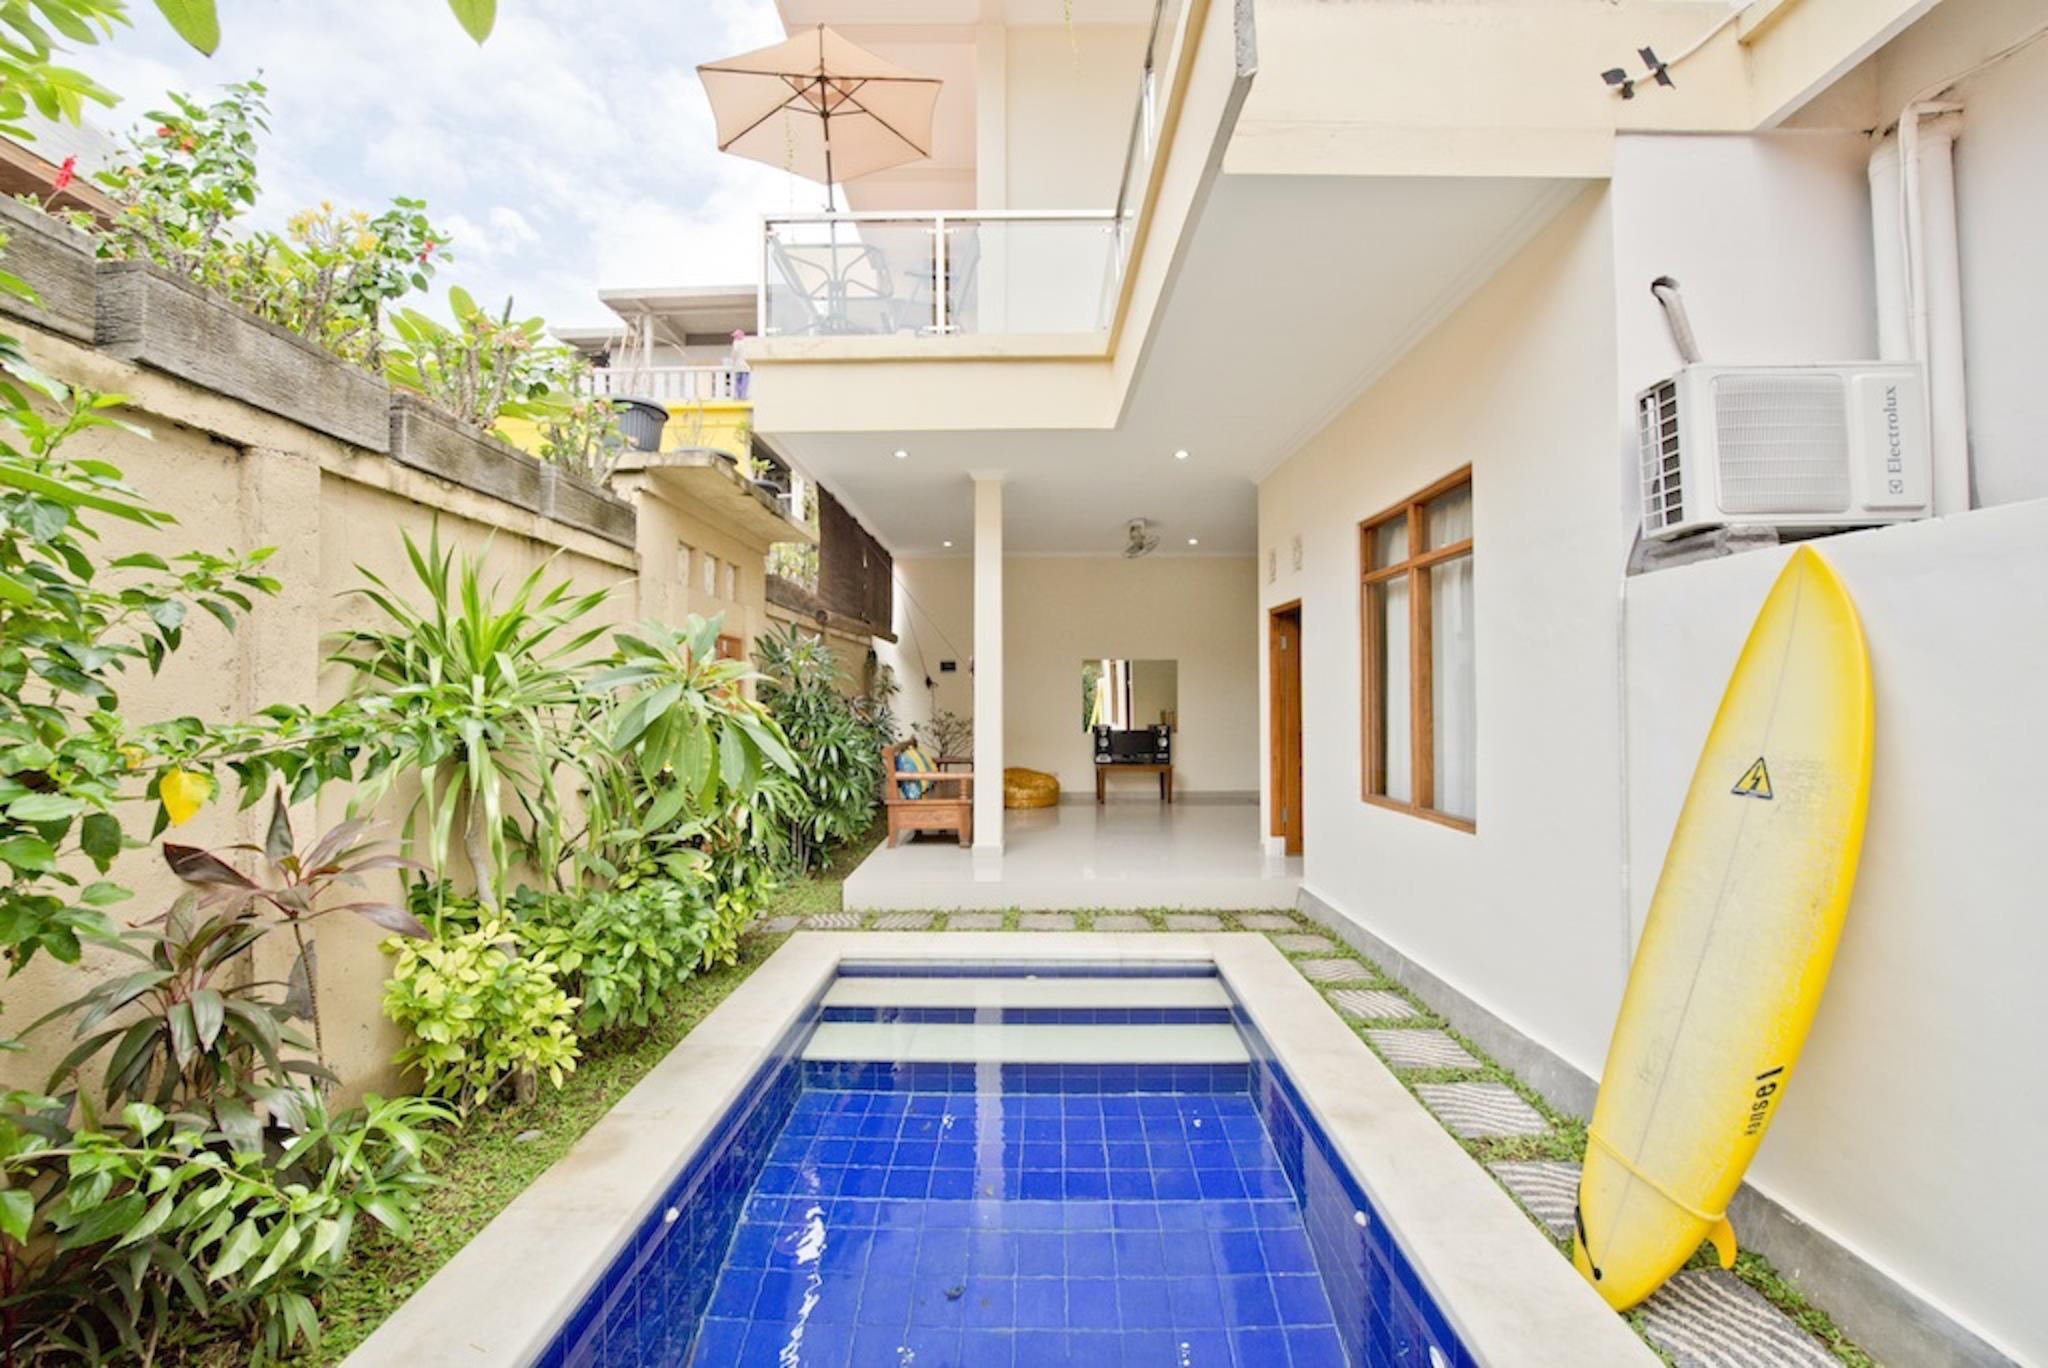 3 Bedroom Kuta Villa Walking Distance to the Beach